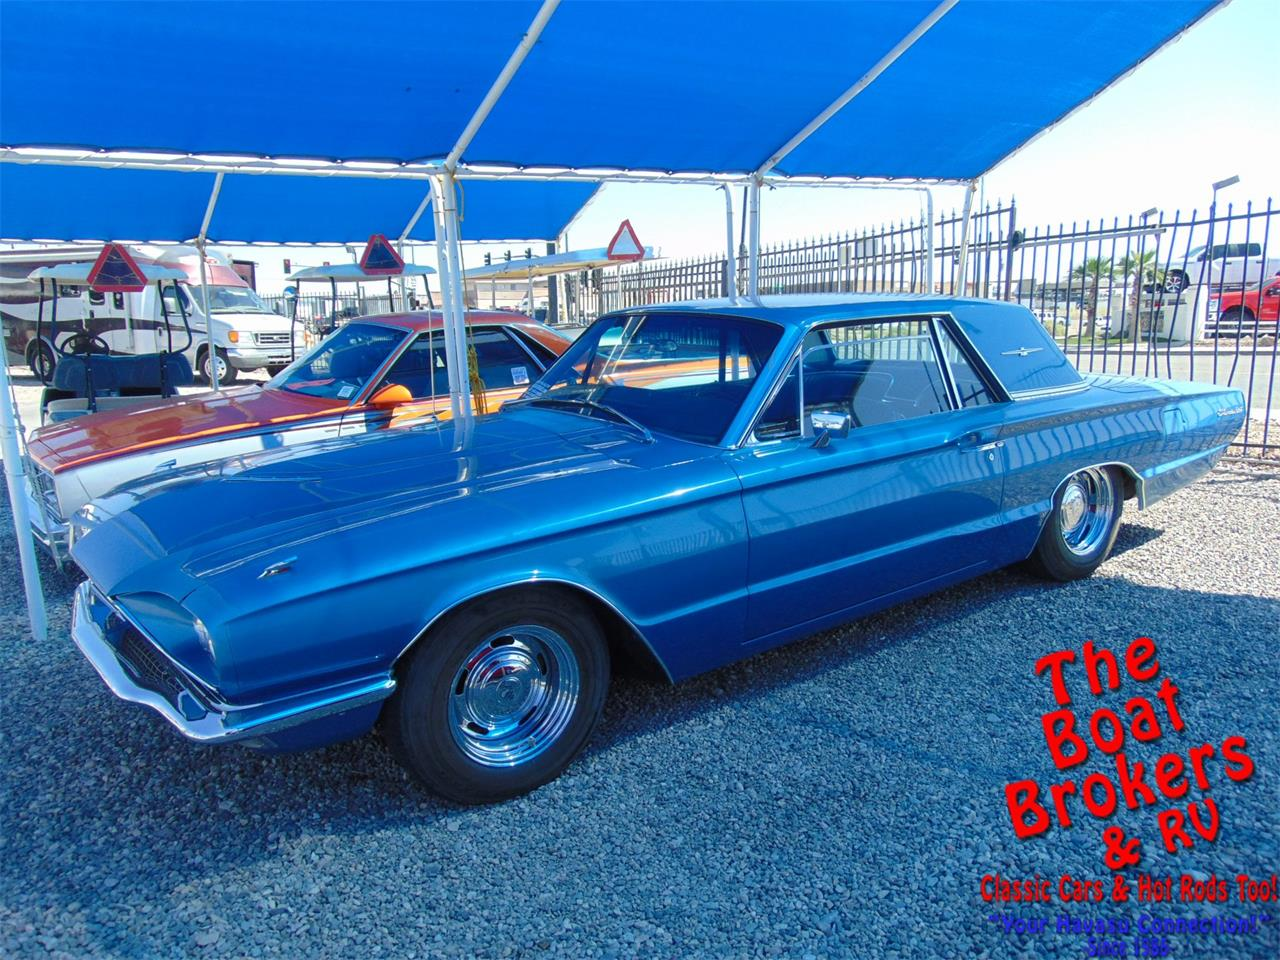 Large Picture of 1966 Ford Thunderbird - $15,995.00 Offered by The Boat Brokers - PQRZ